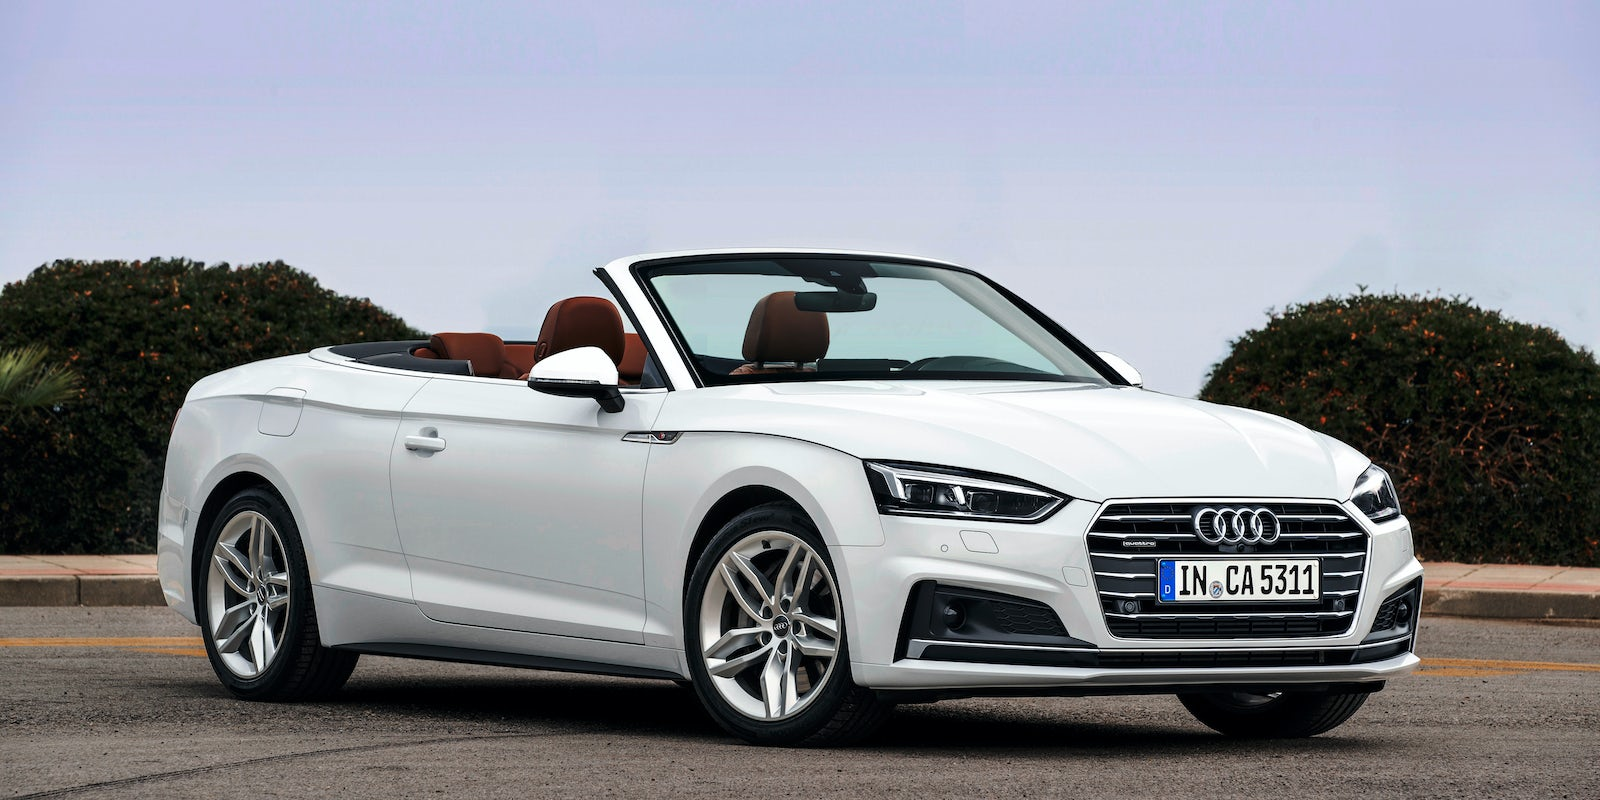 audi a5 cabrio im test mit bildern wertung carwow. Black Bedroom Furniture Sets. Home Design Ideas